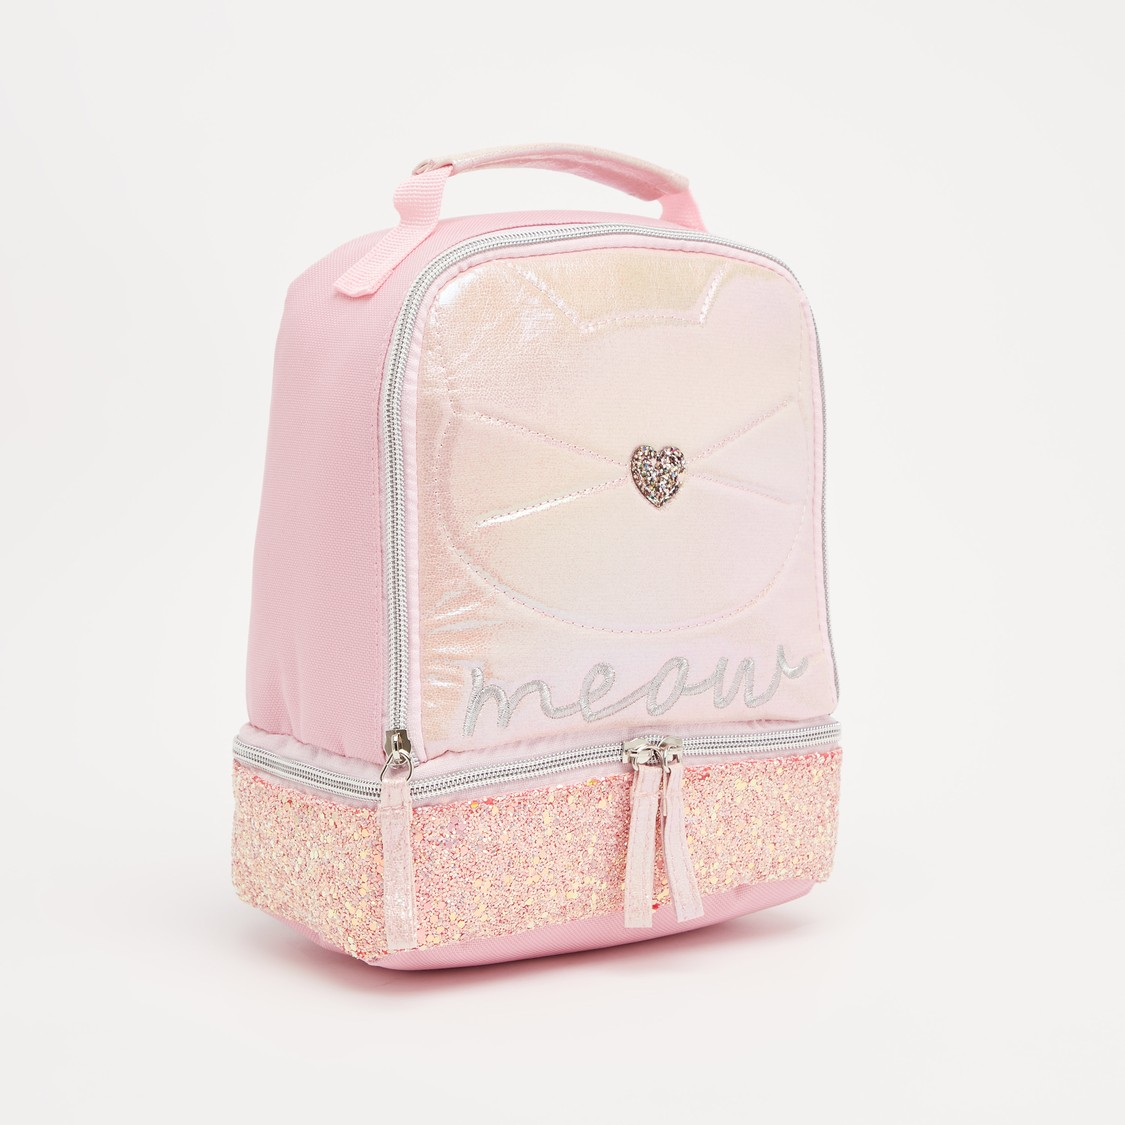 Embellished Lunch Bag with Strap and Zip Closure